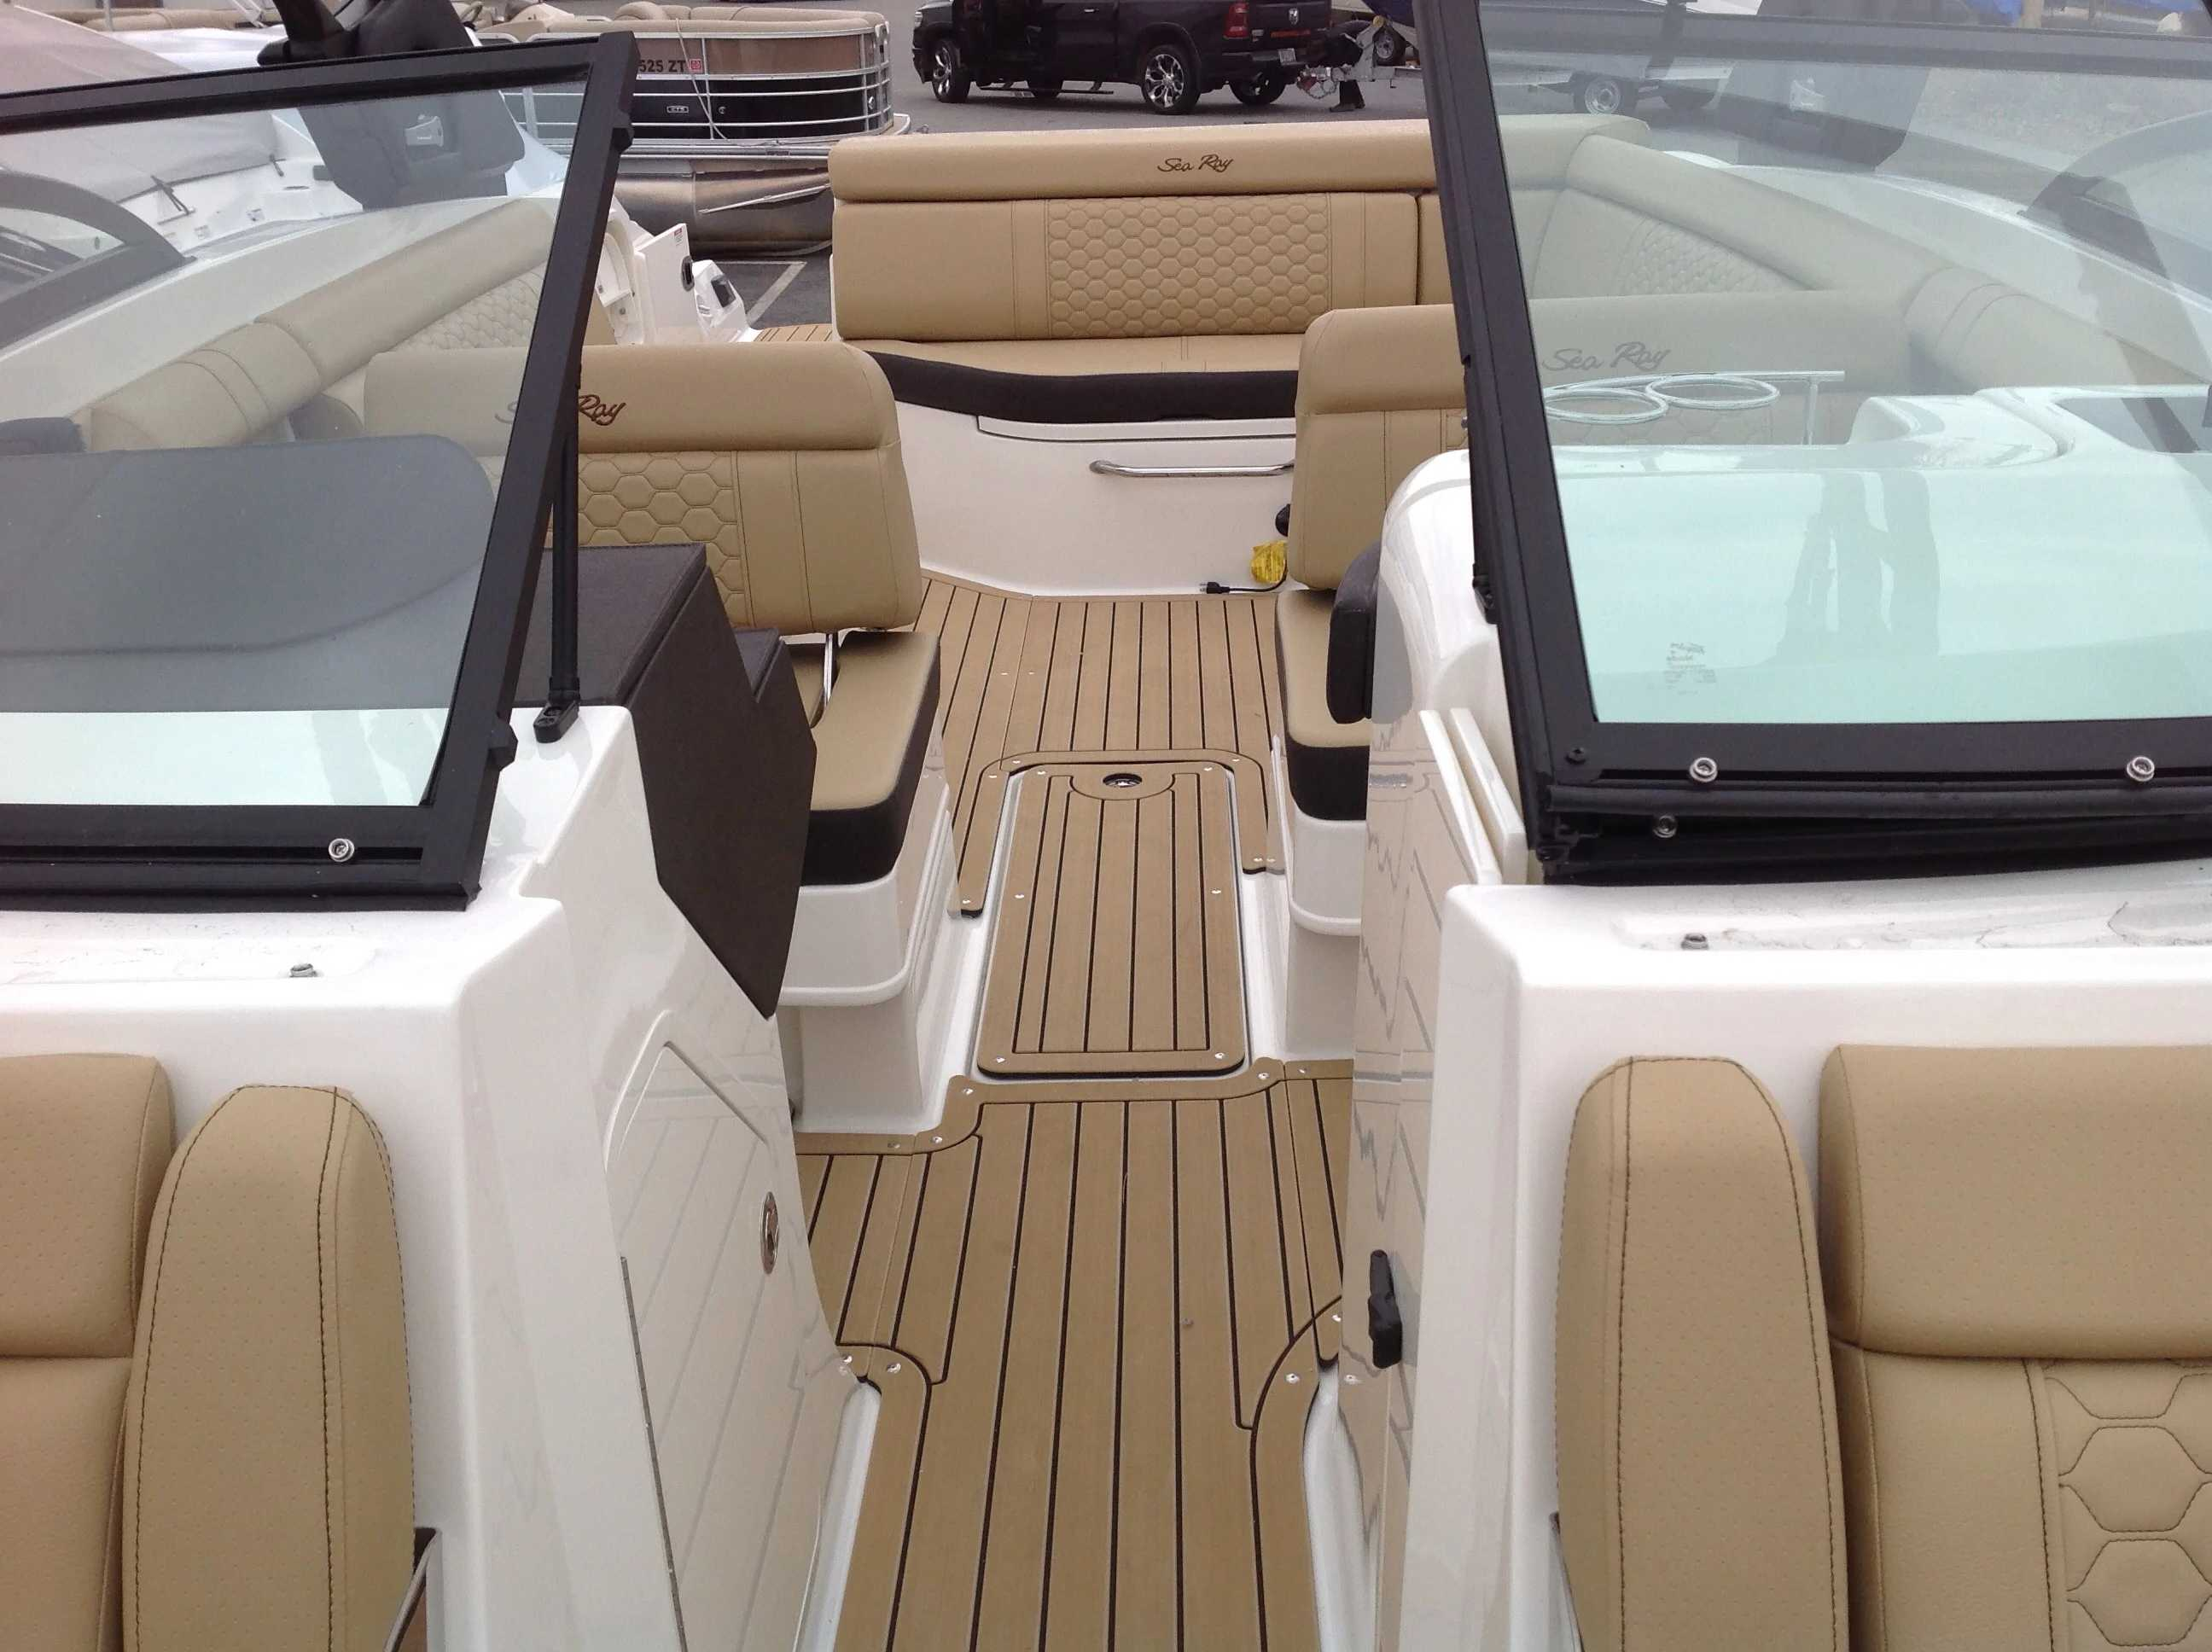 2021 Sea Ray boat for sale, model of the boat is 270 SDX & Image # 4 of 15